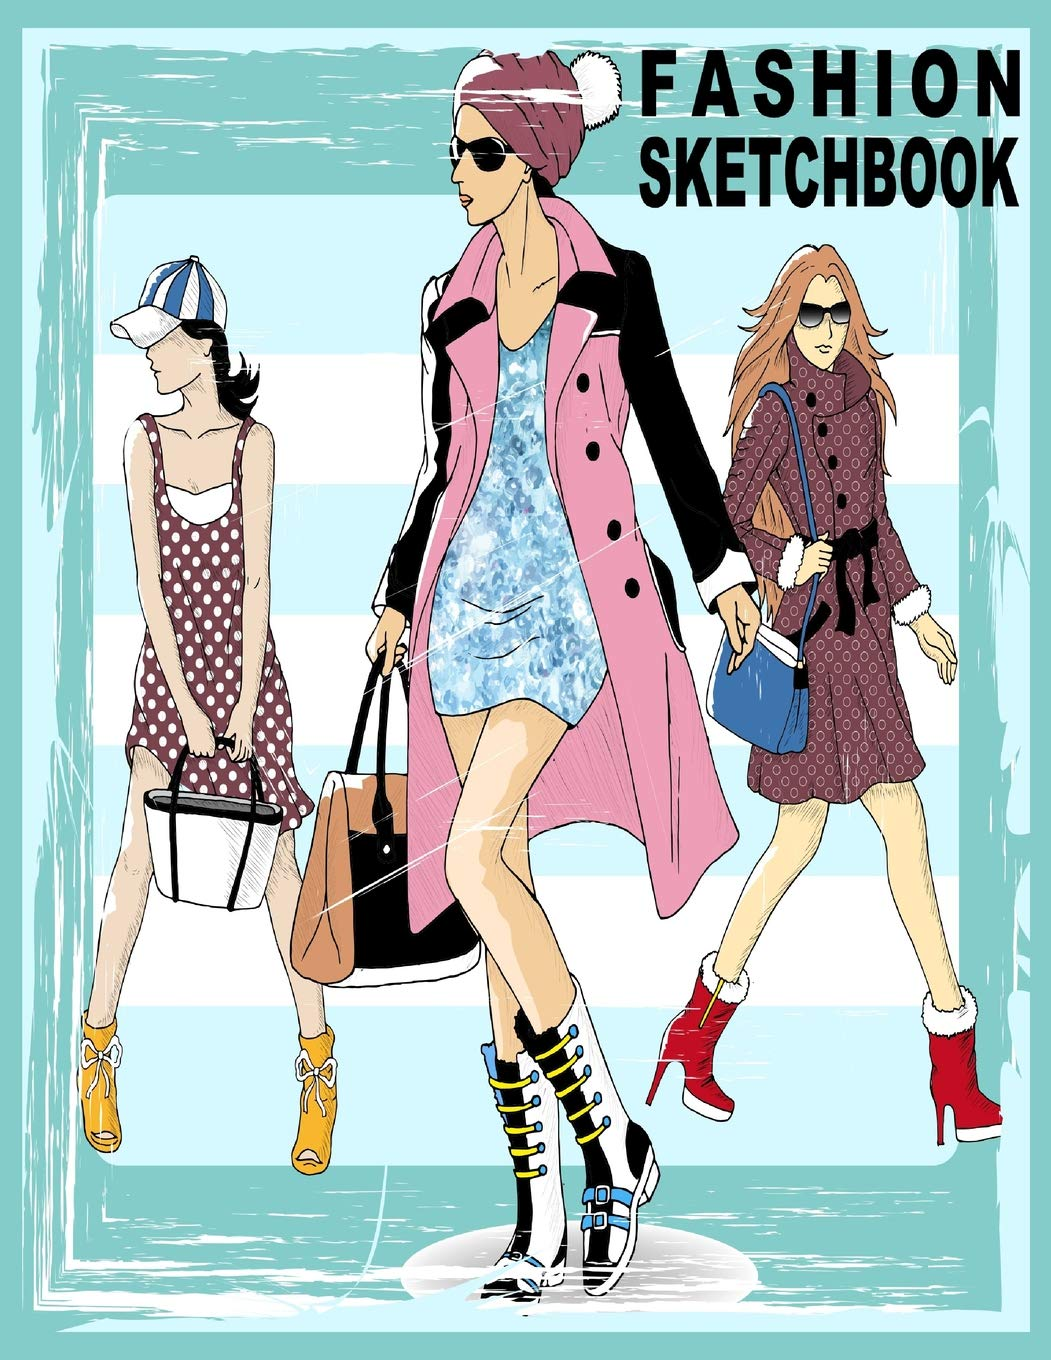 Fashion Sketchbook 196 Figure Templates For Designing Looks And Building Your Portfolio Fashion Sketch Ahrendts Angel 9781718125766 Amazon Com Books